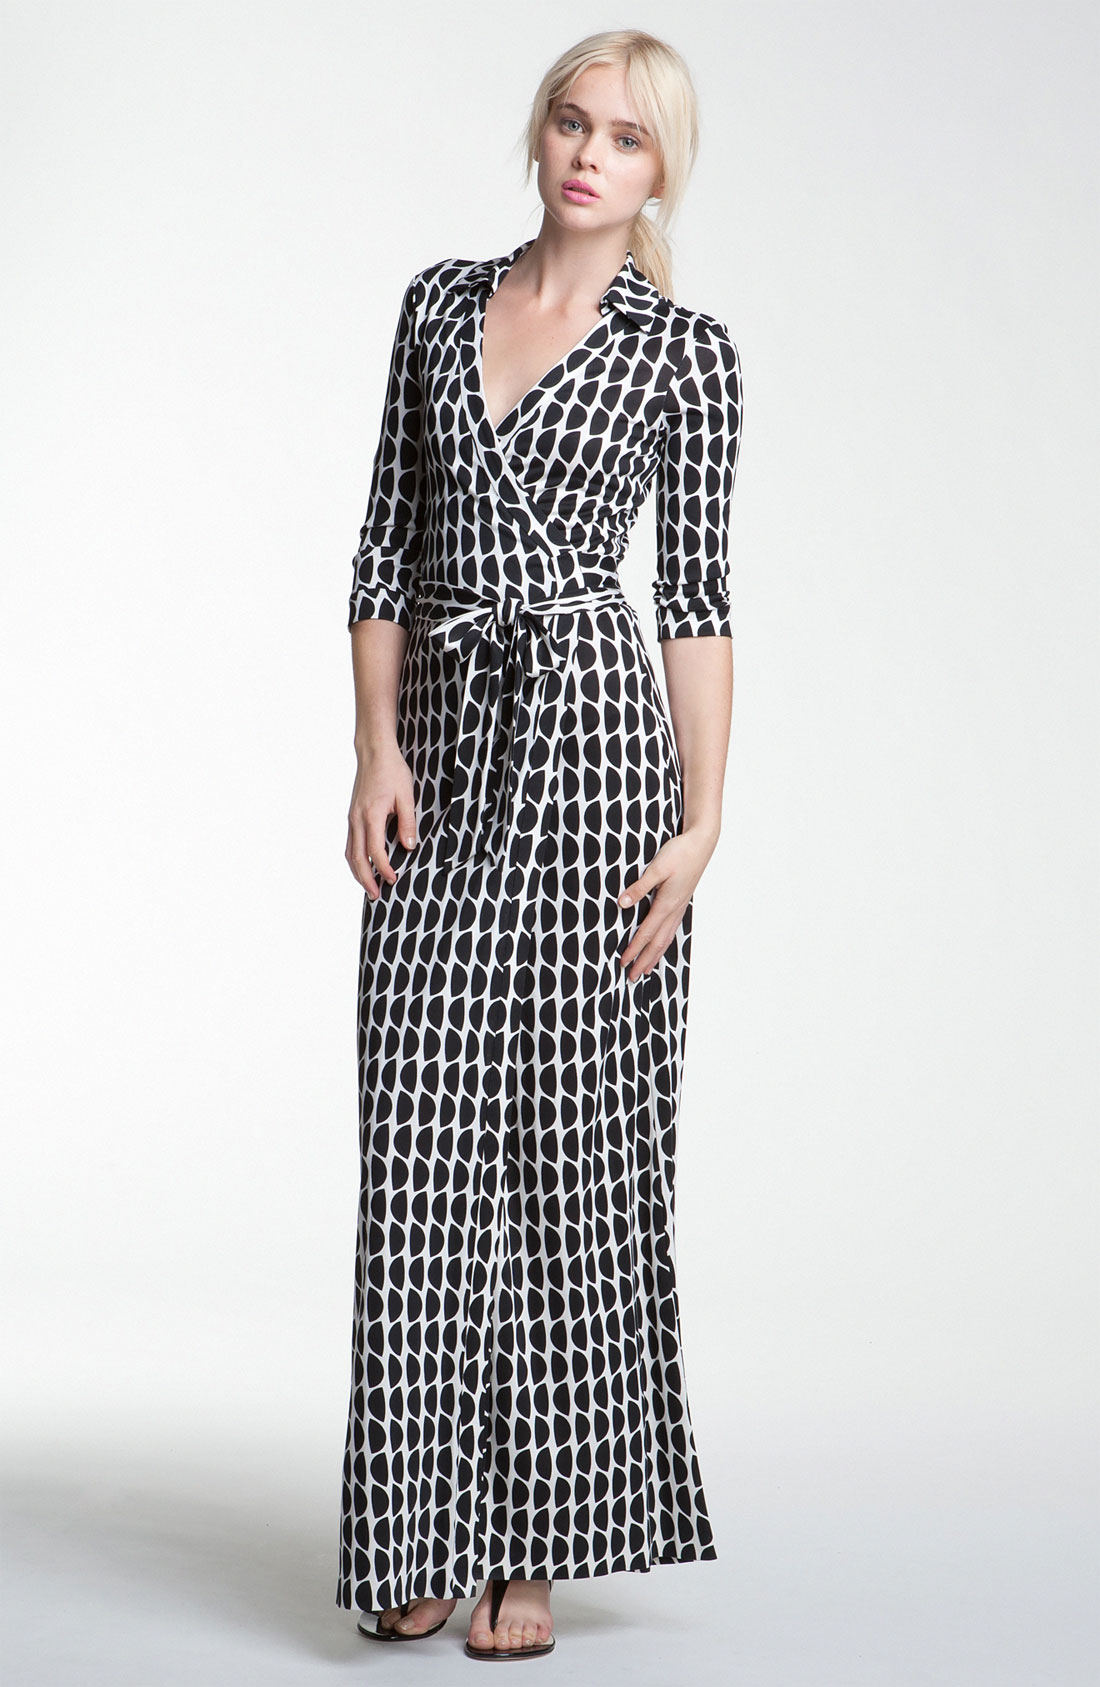 Dvf Abigail Dress View Fullscreen